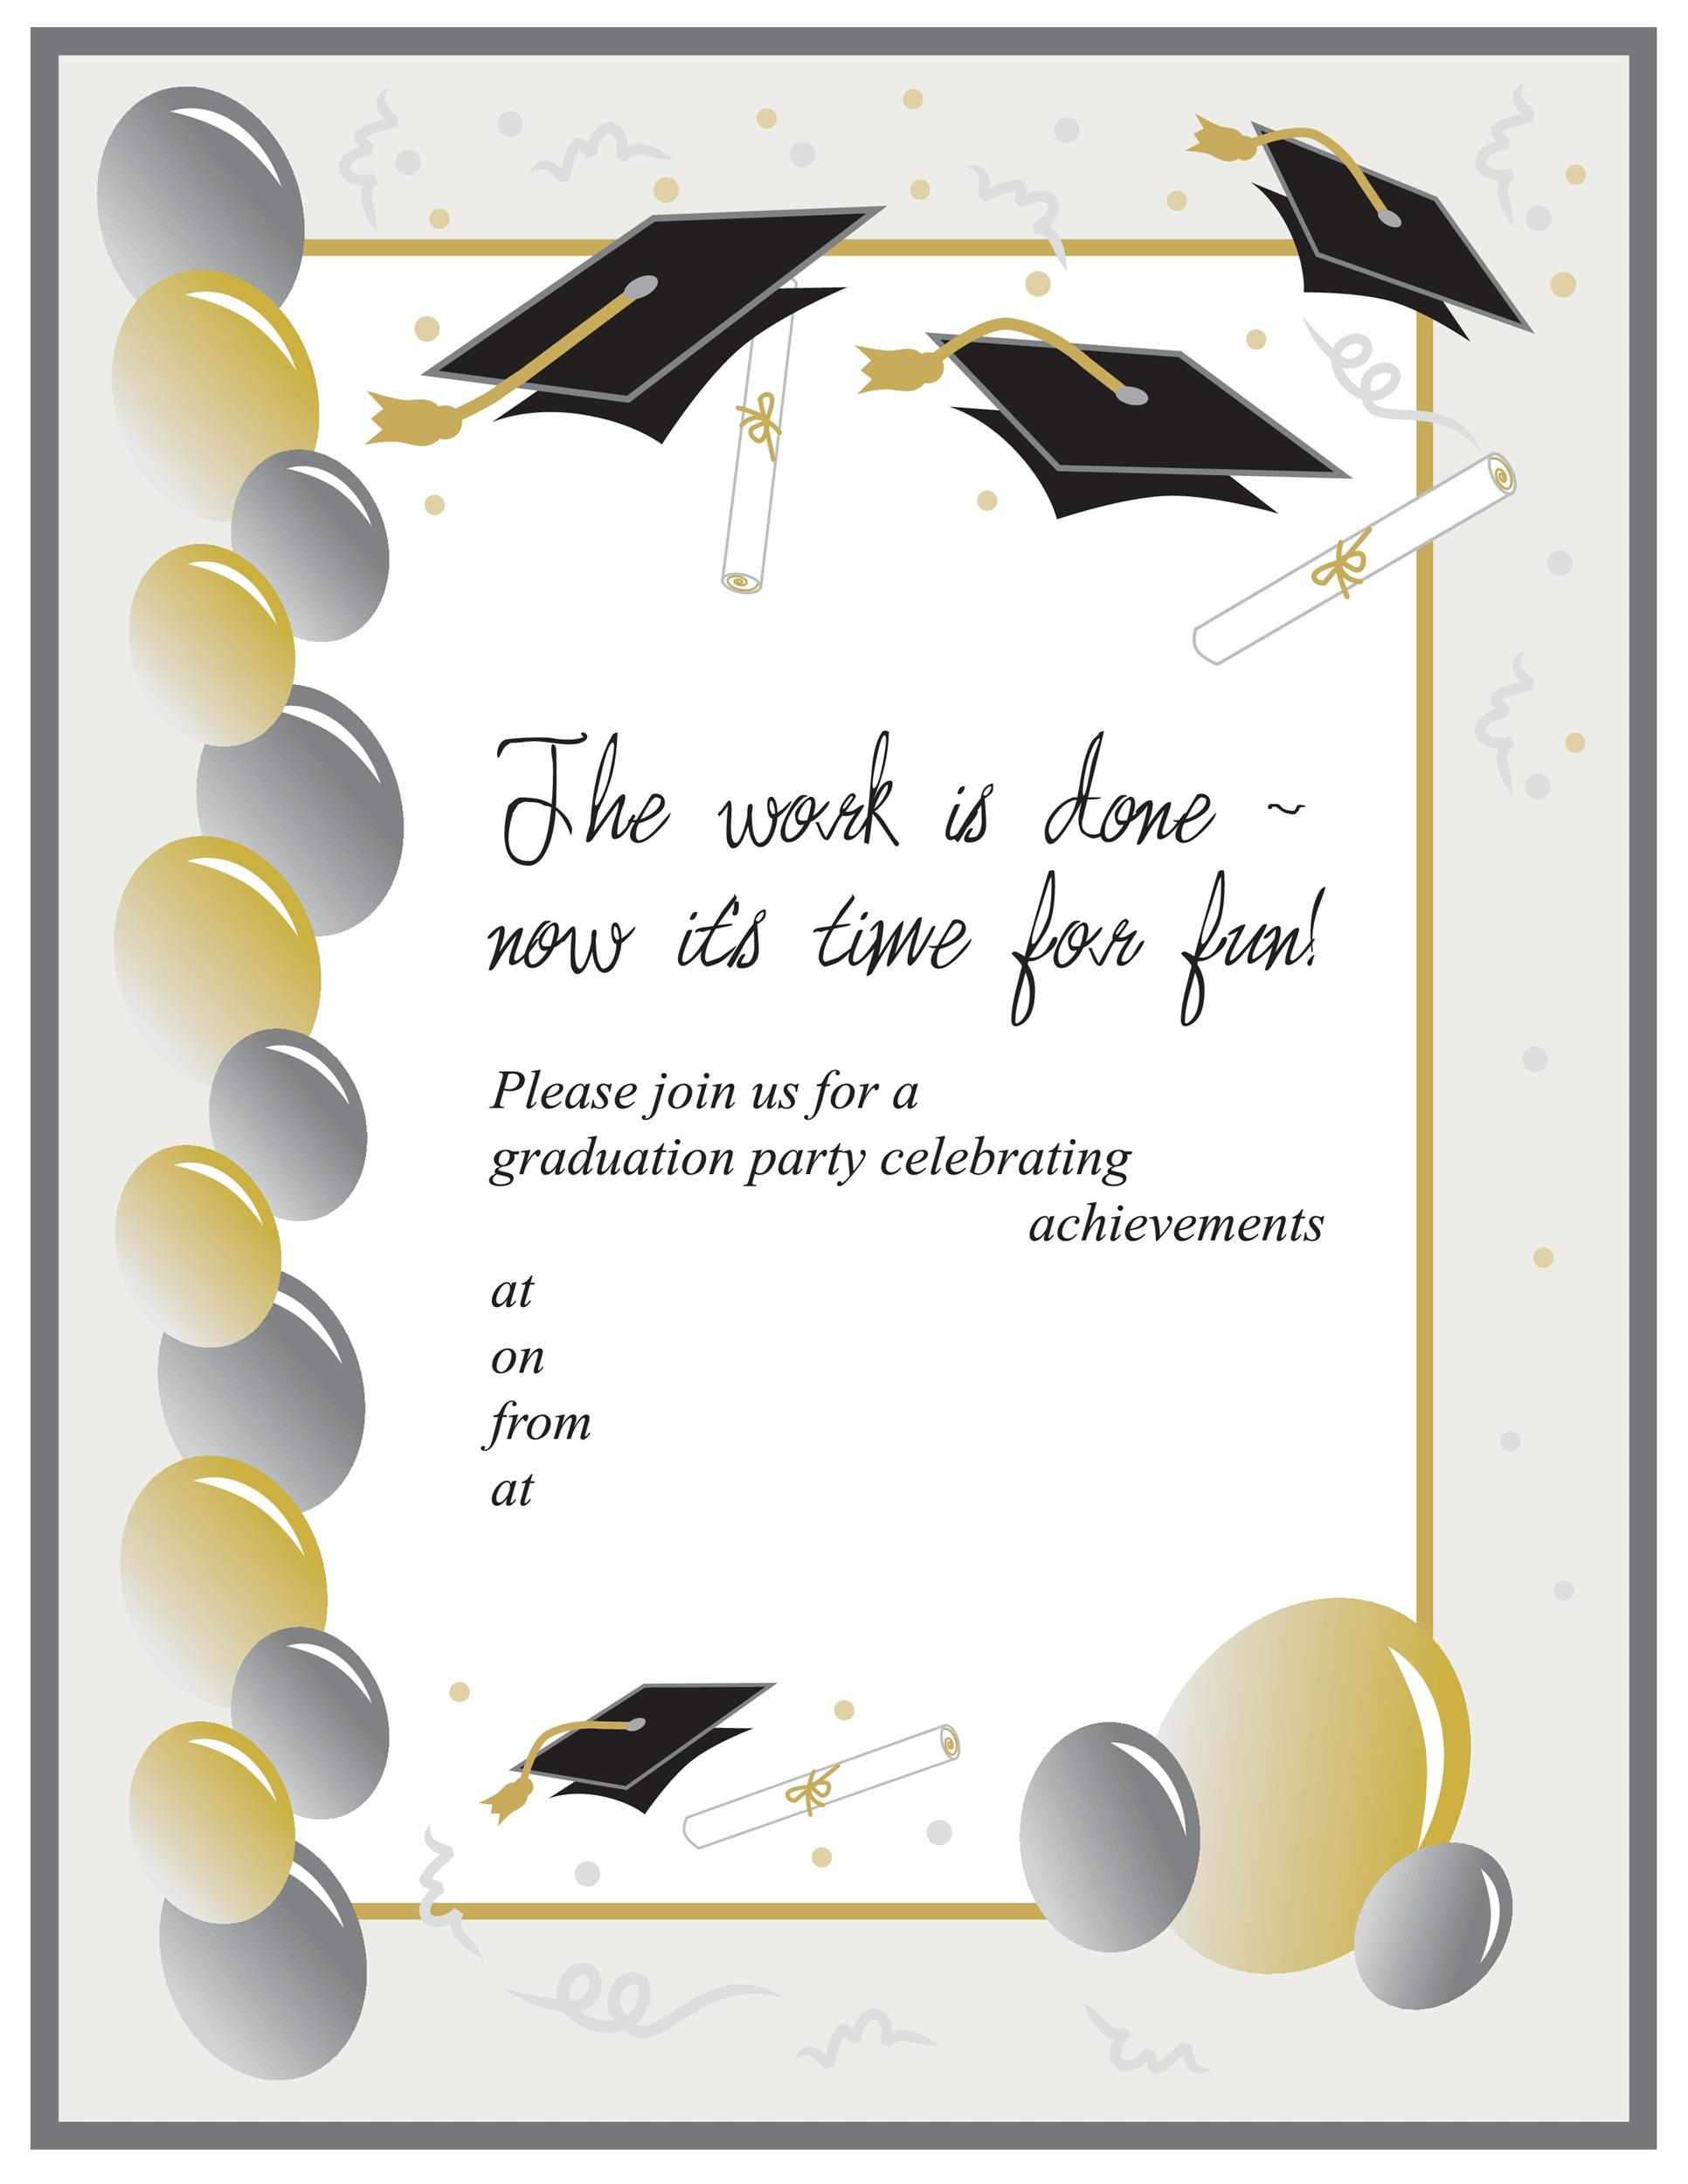 Graduation ceremony invitation templates free yeniscale 40 free graduation invitation templates template lab stopboris Gallery